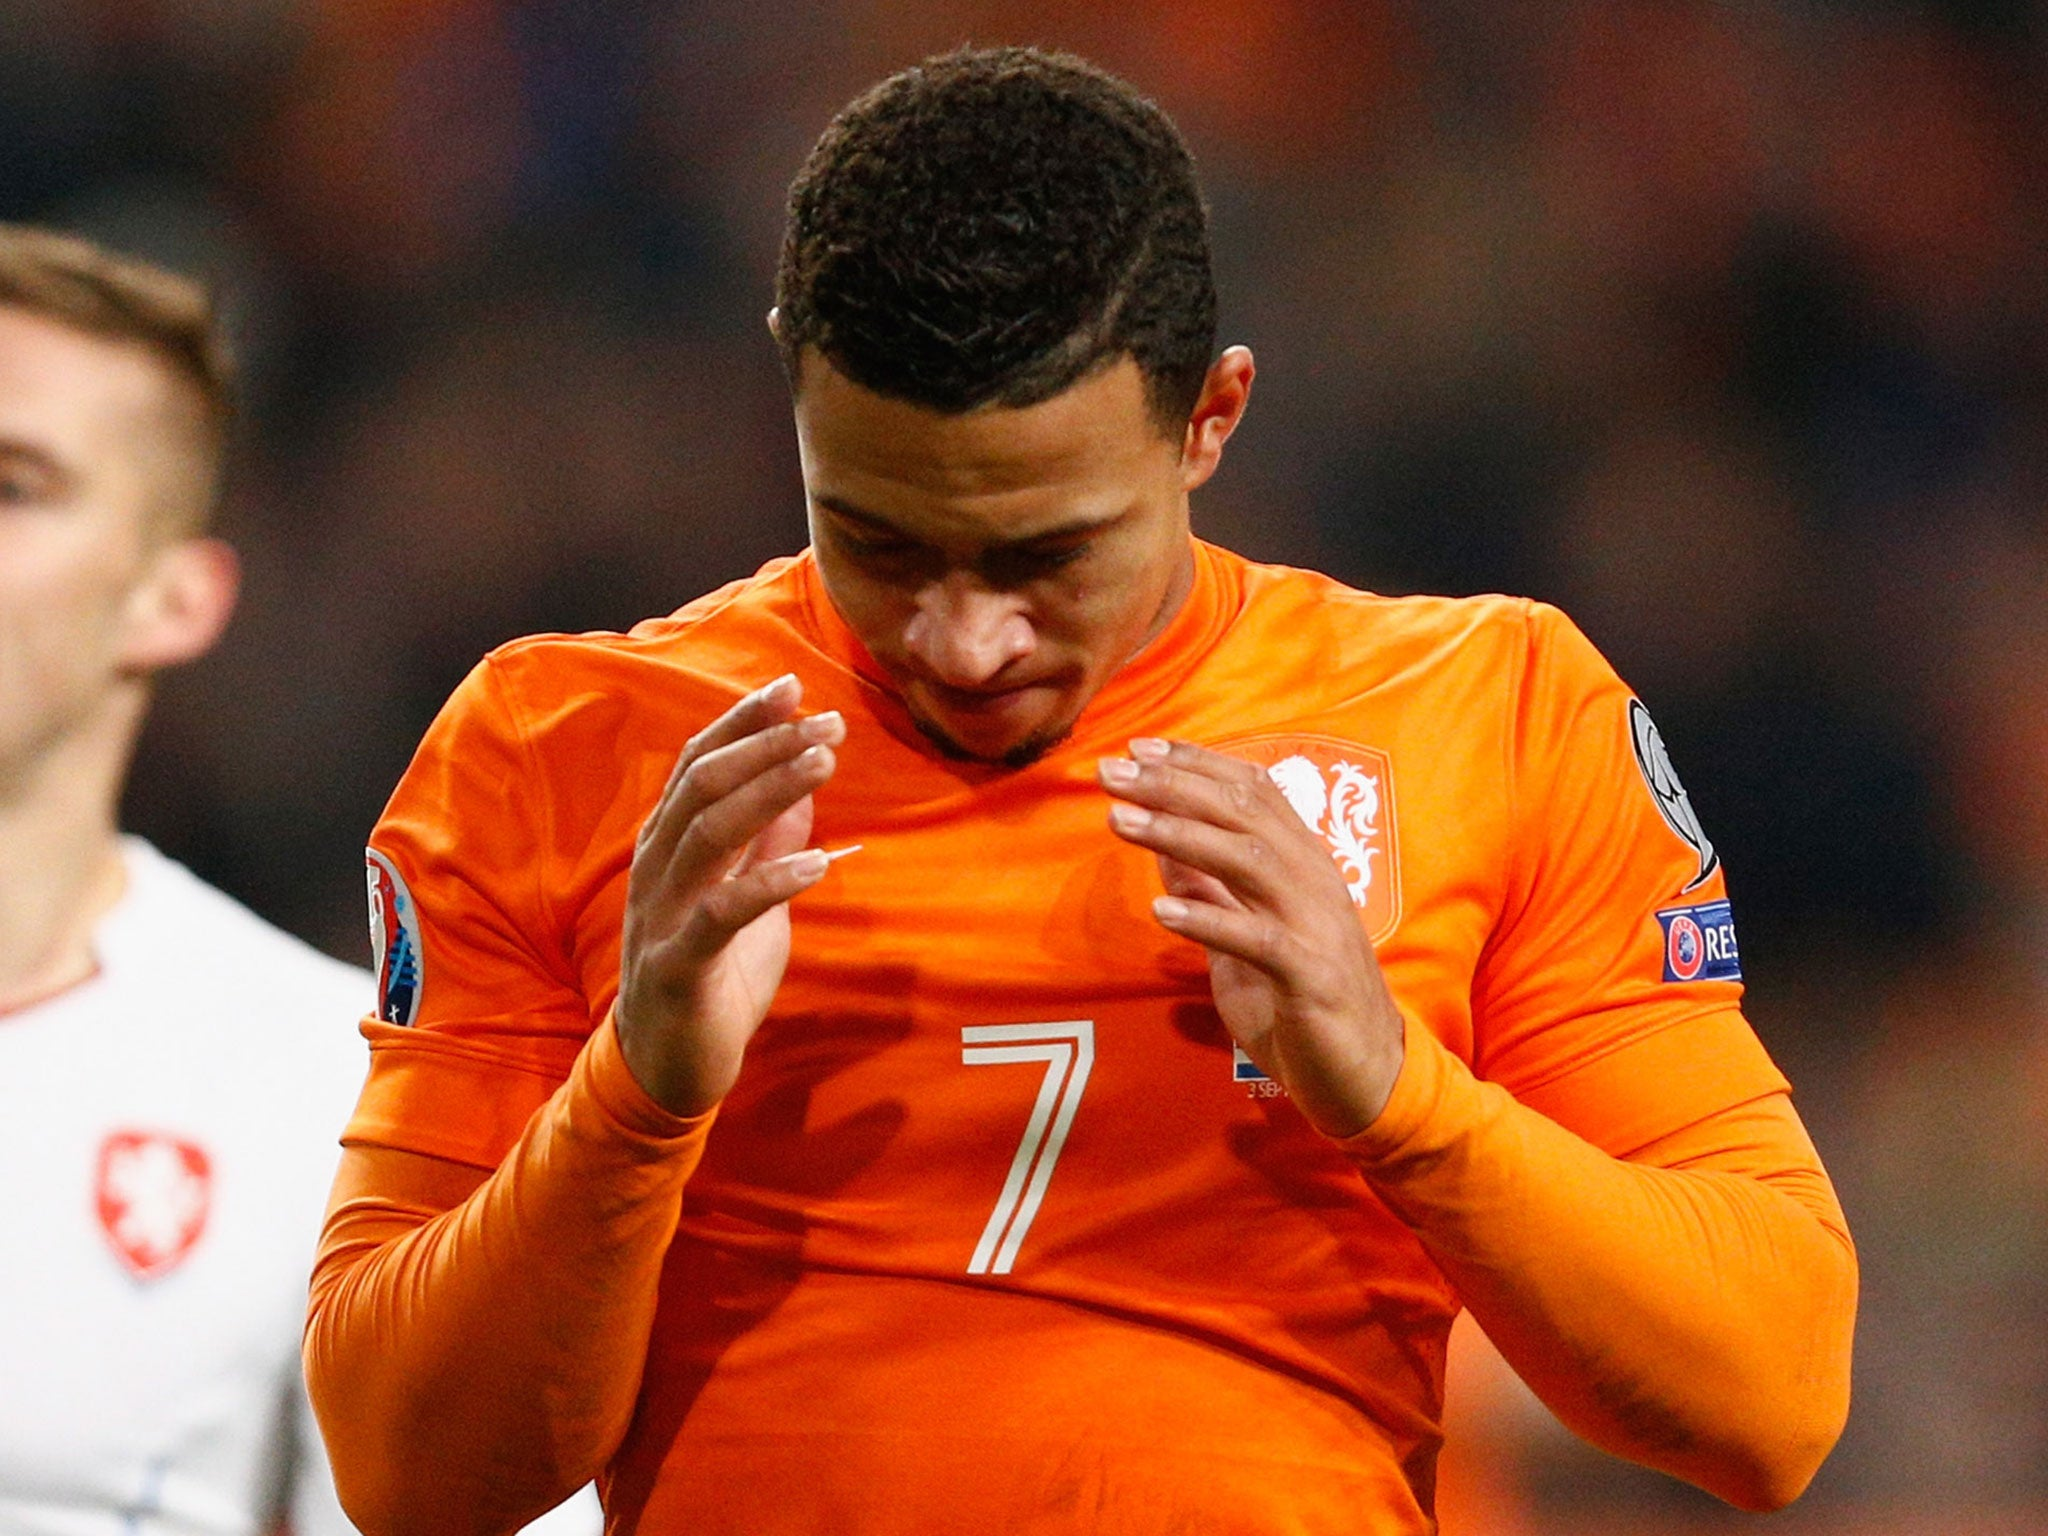 Memphis Depay has 'attitude' problem and 'people at Manchester United are starting to get fed up', claims former Netherlands international